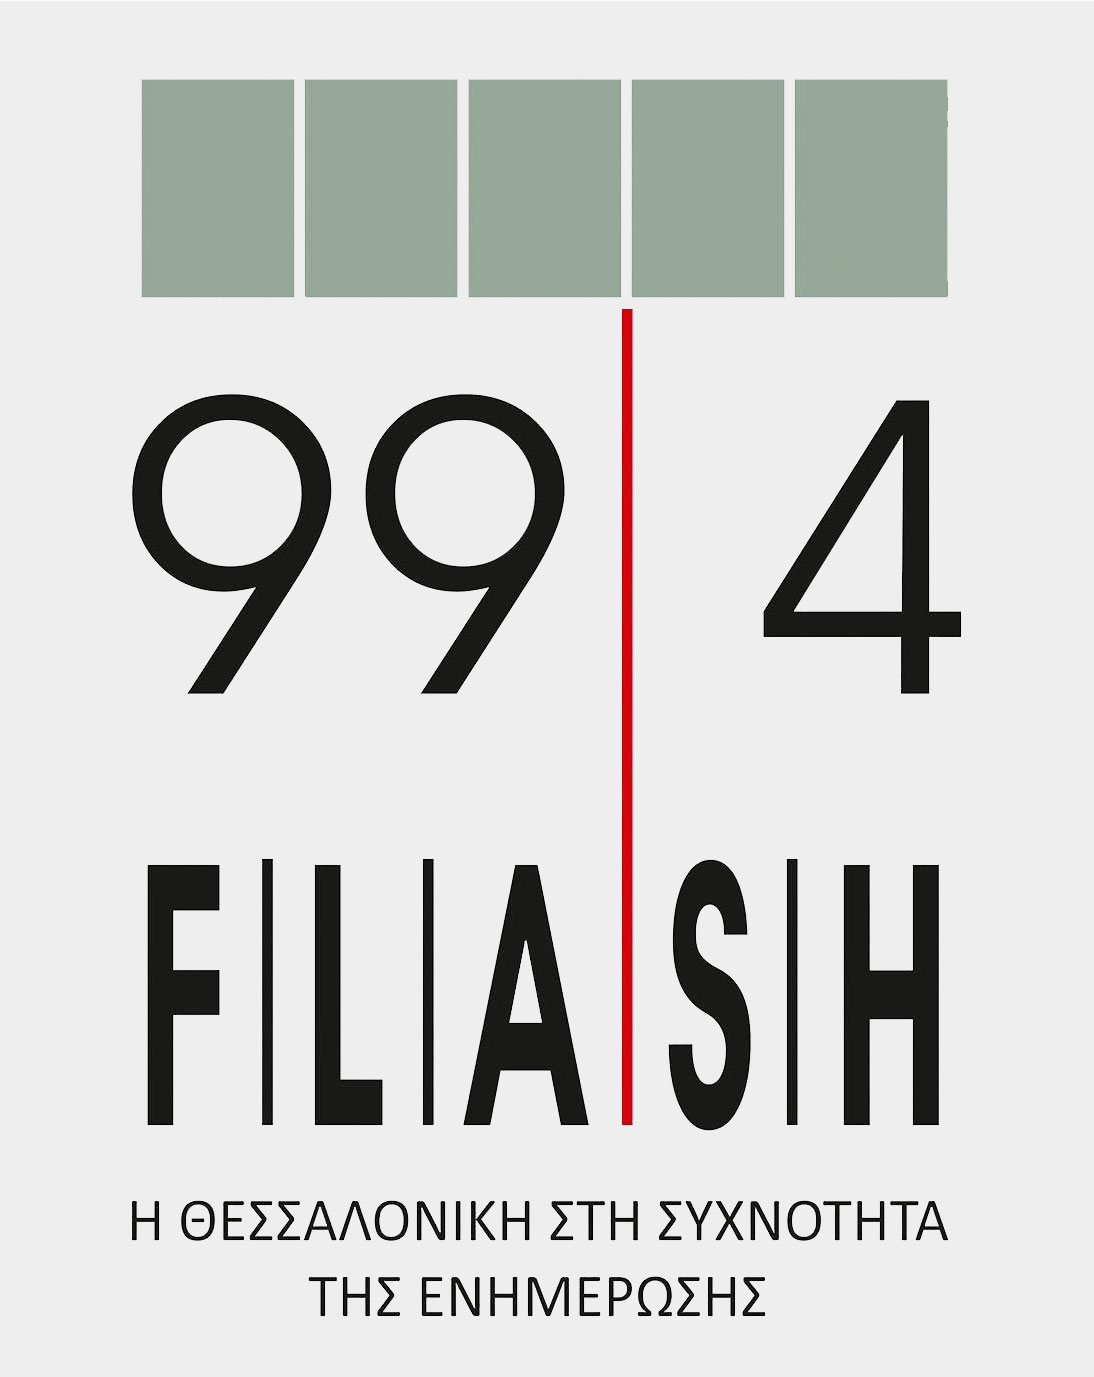 FLASH Radio 99.4